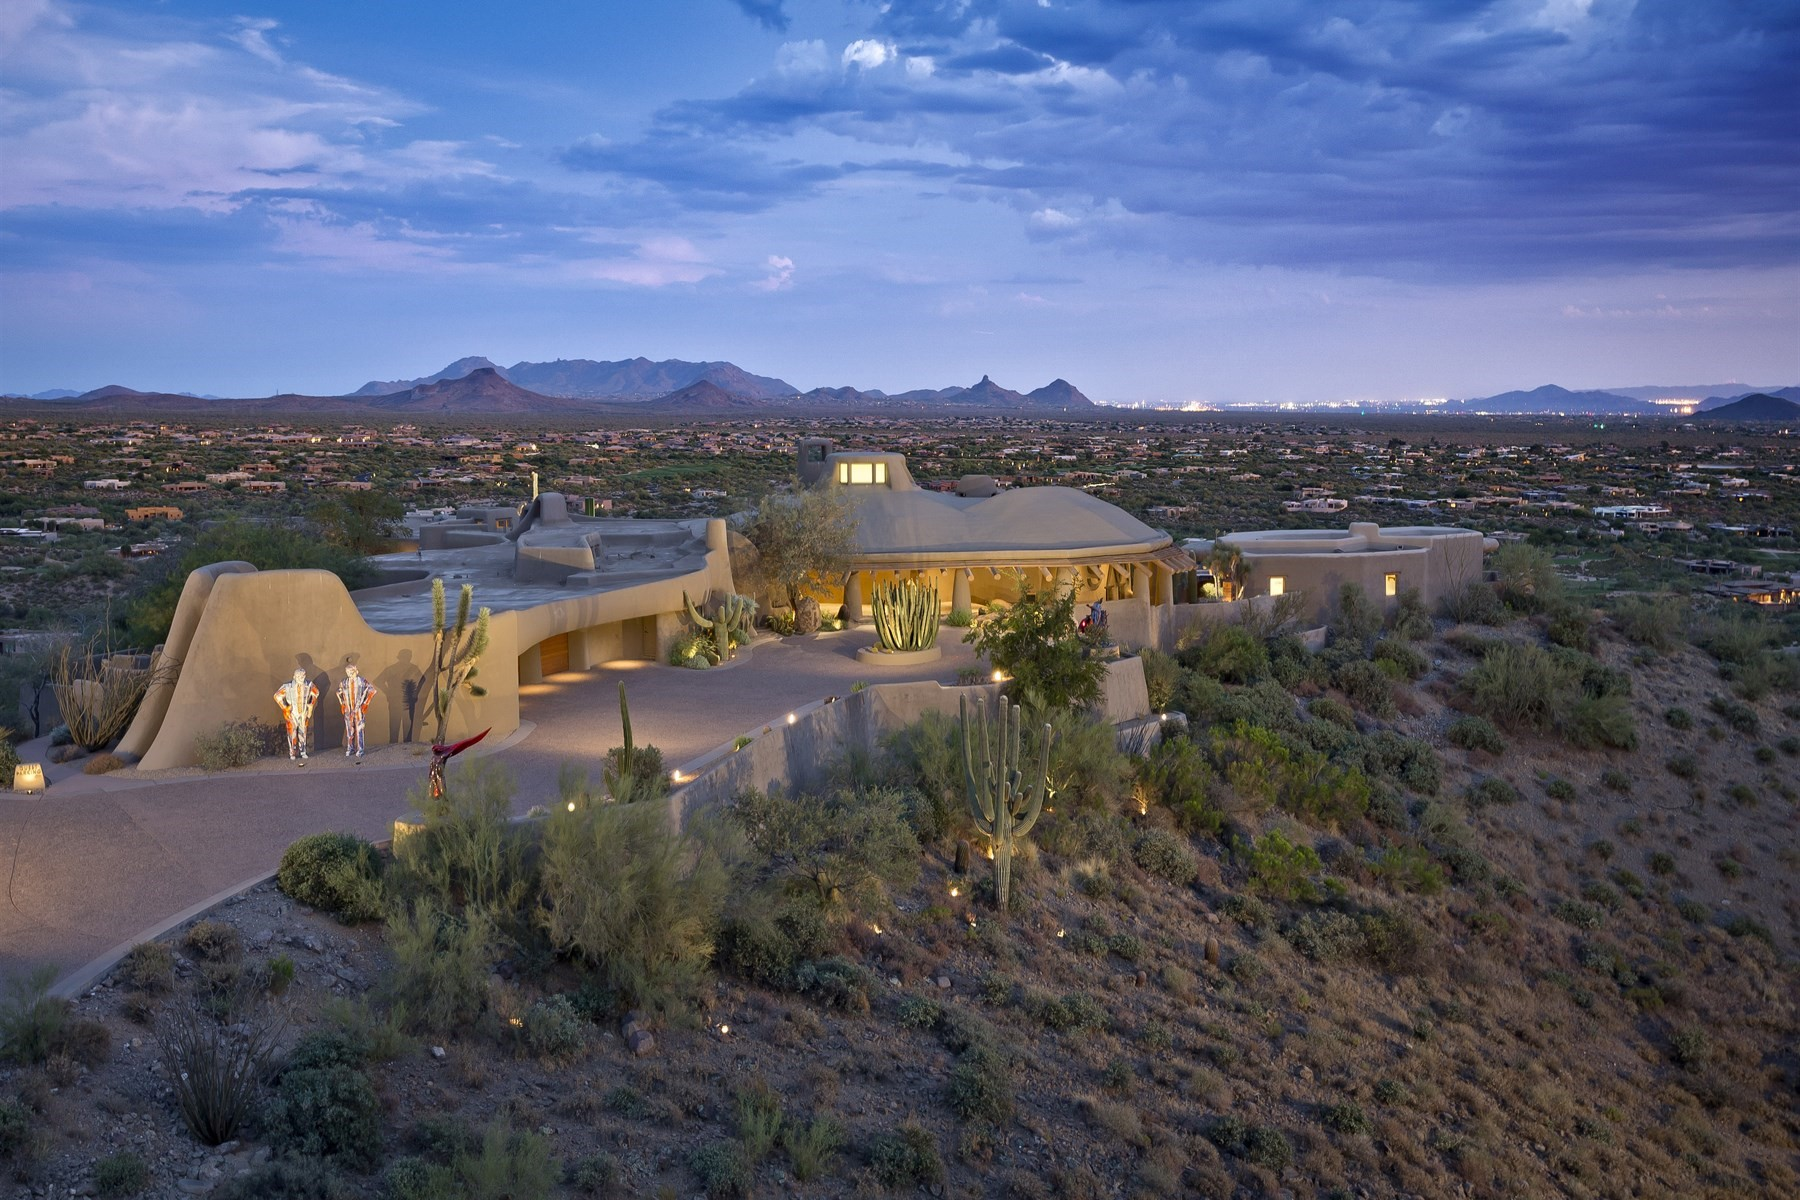 Einfamilienhaus für Verkauf beim One-of-a-kind 15-acre estate that towers over the valley 39029 N Alister McKenzie Dr Scottsdale, Arizona, 85262 Vereinigte Staaten